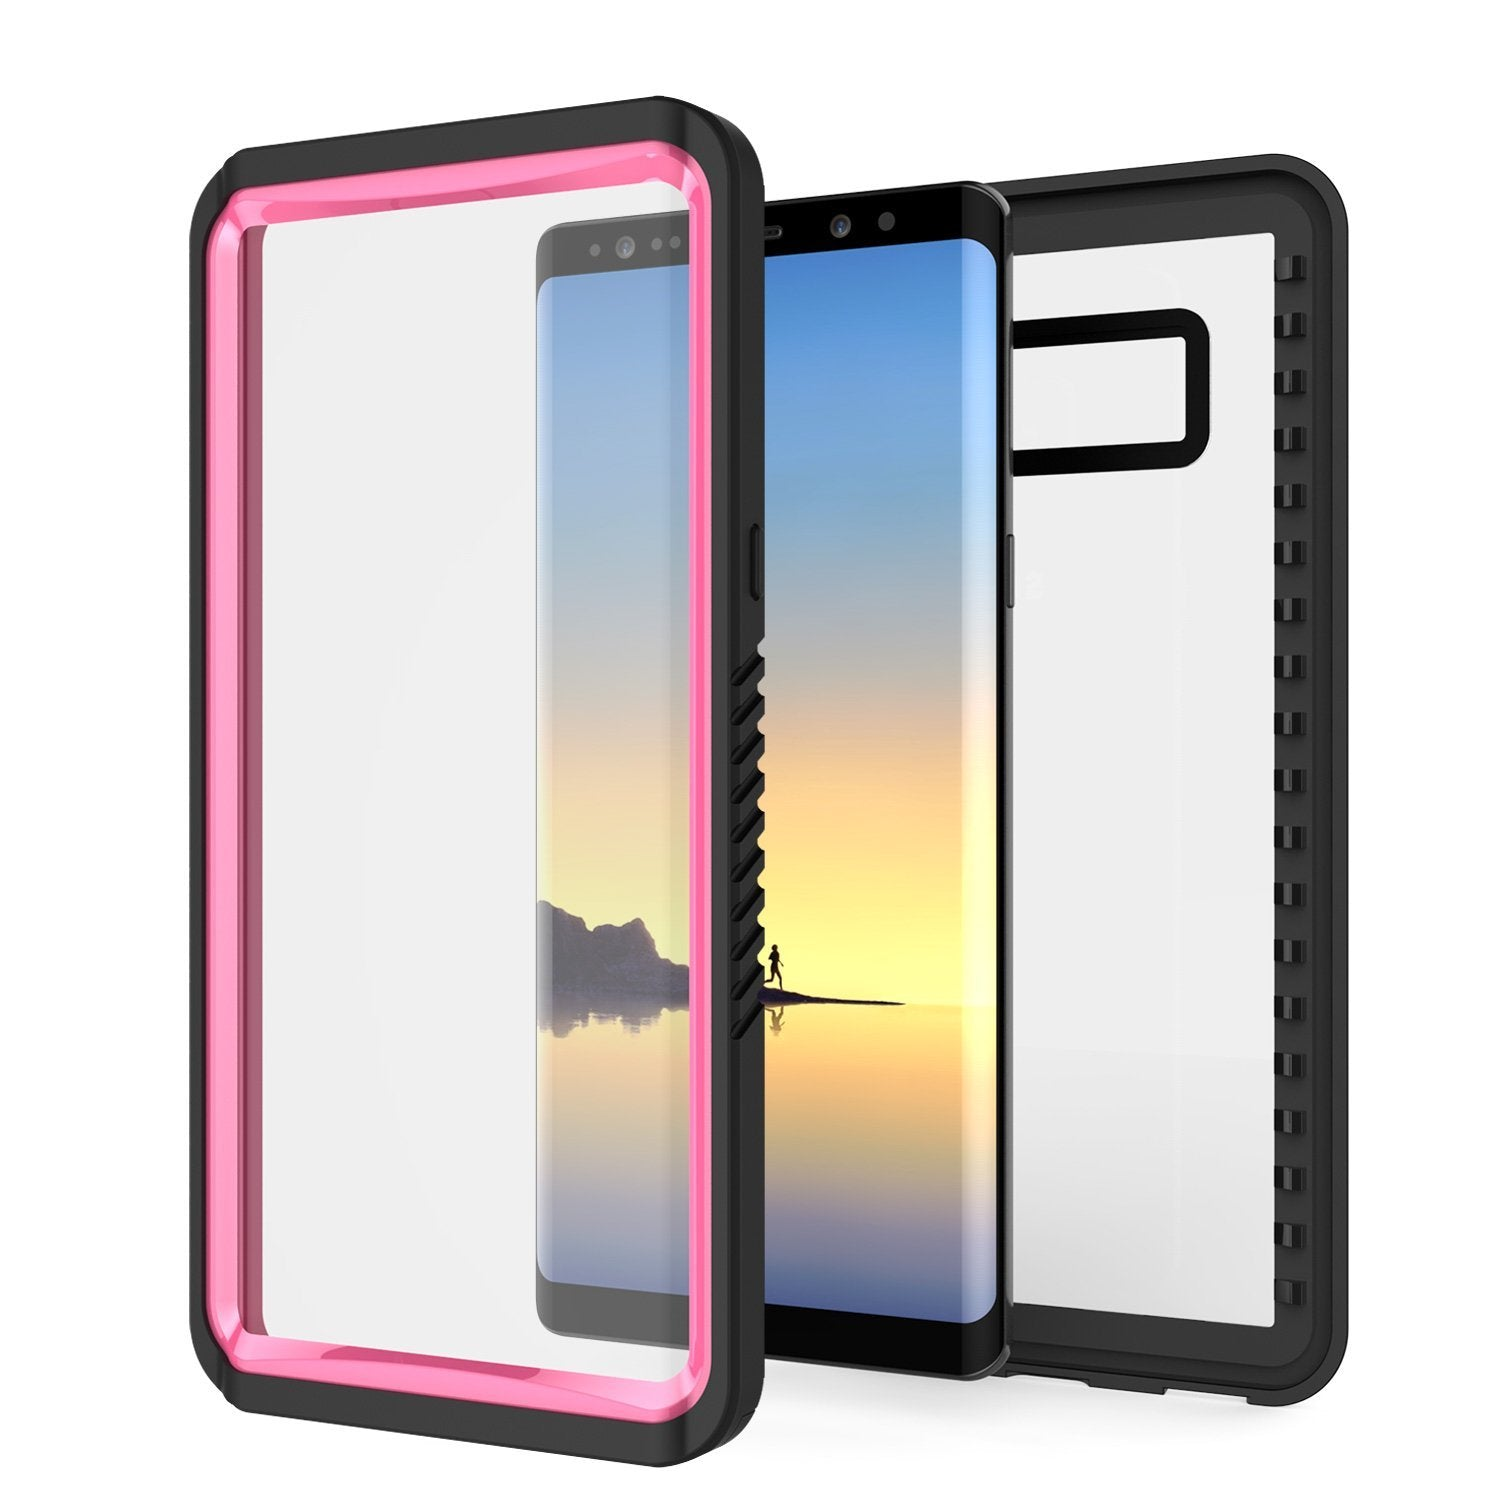 Galaxy Note 8 Anti-Shock Screen Protector Slim-Fit Case [Pink]